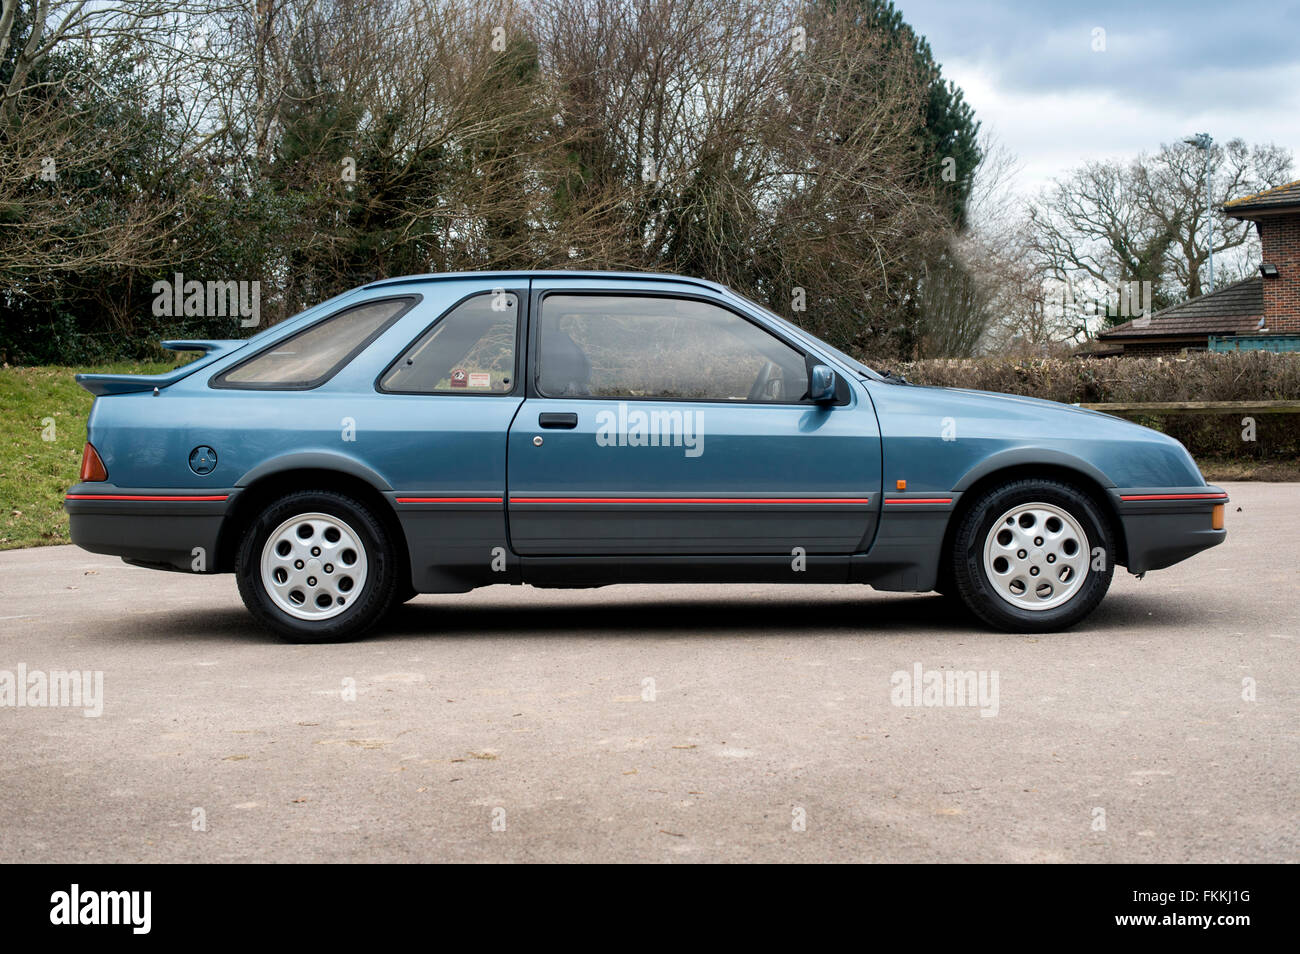 ford sierra stock photos ford sierra stock images alamy. Black Bedroom Furniture Sets. Home Design Ideas